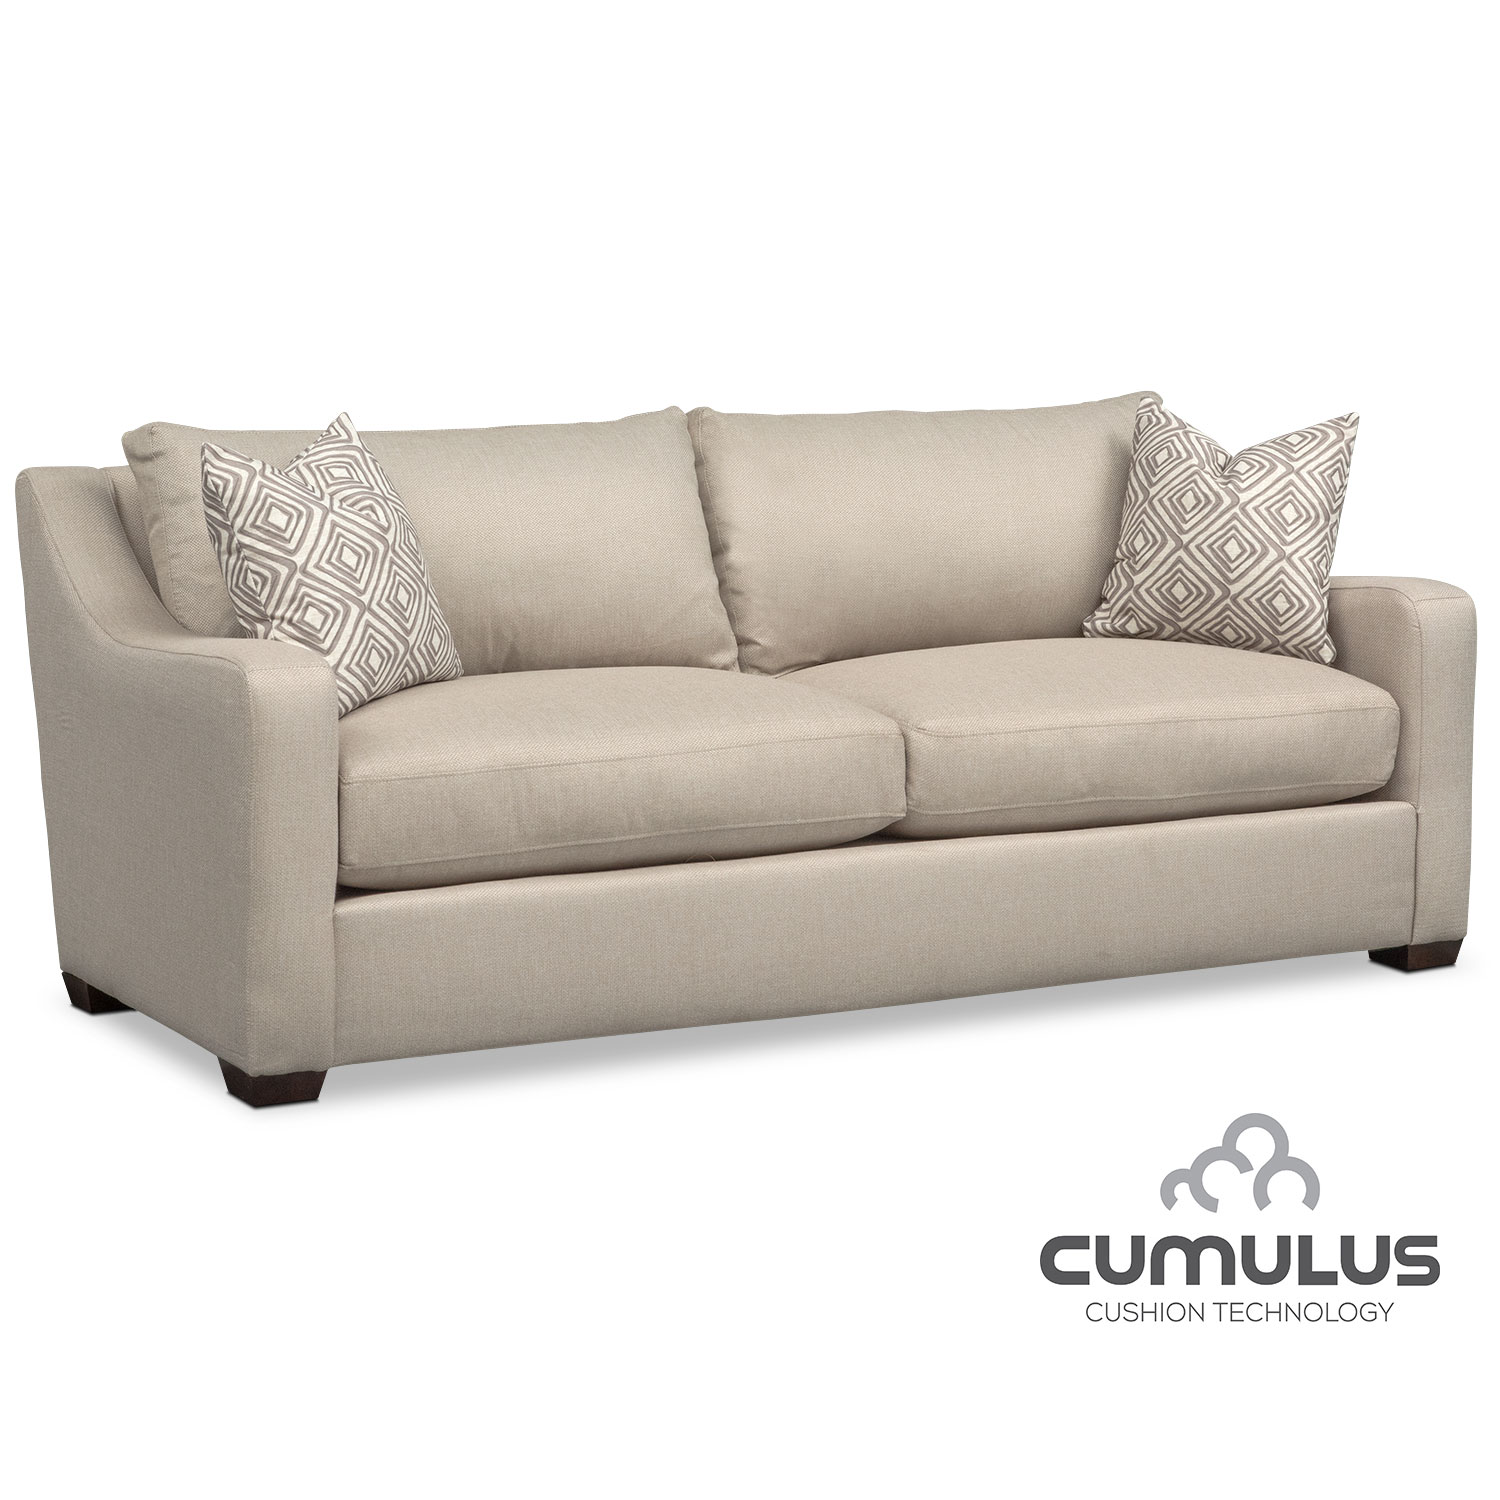 Living Room Furniture - Jules Cumulus Sofa - Cream